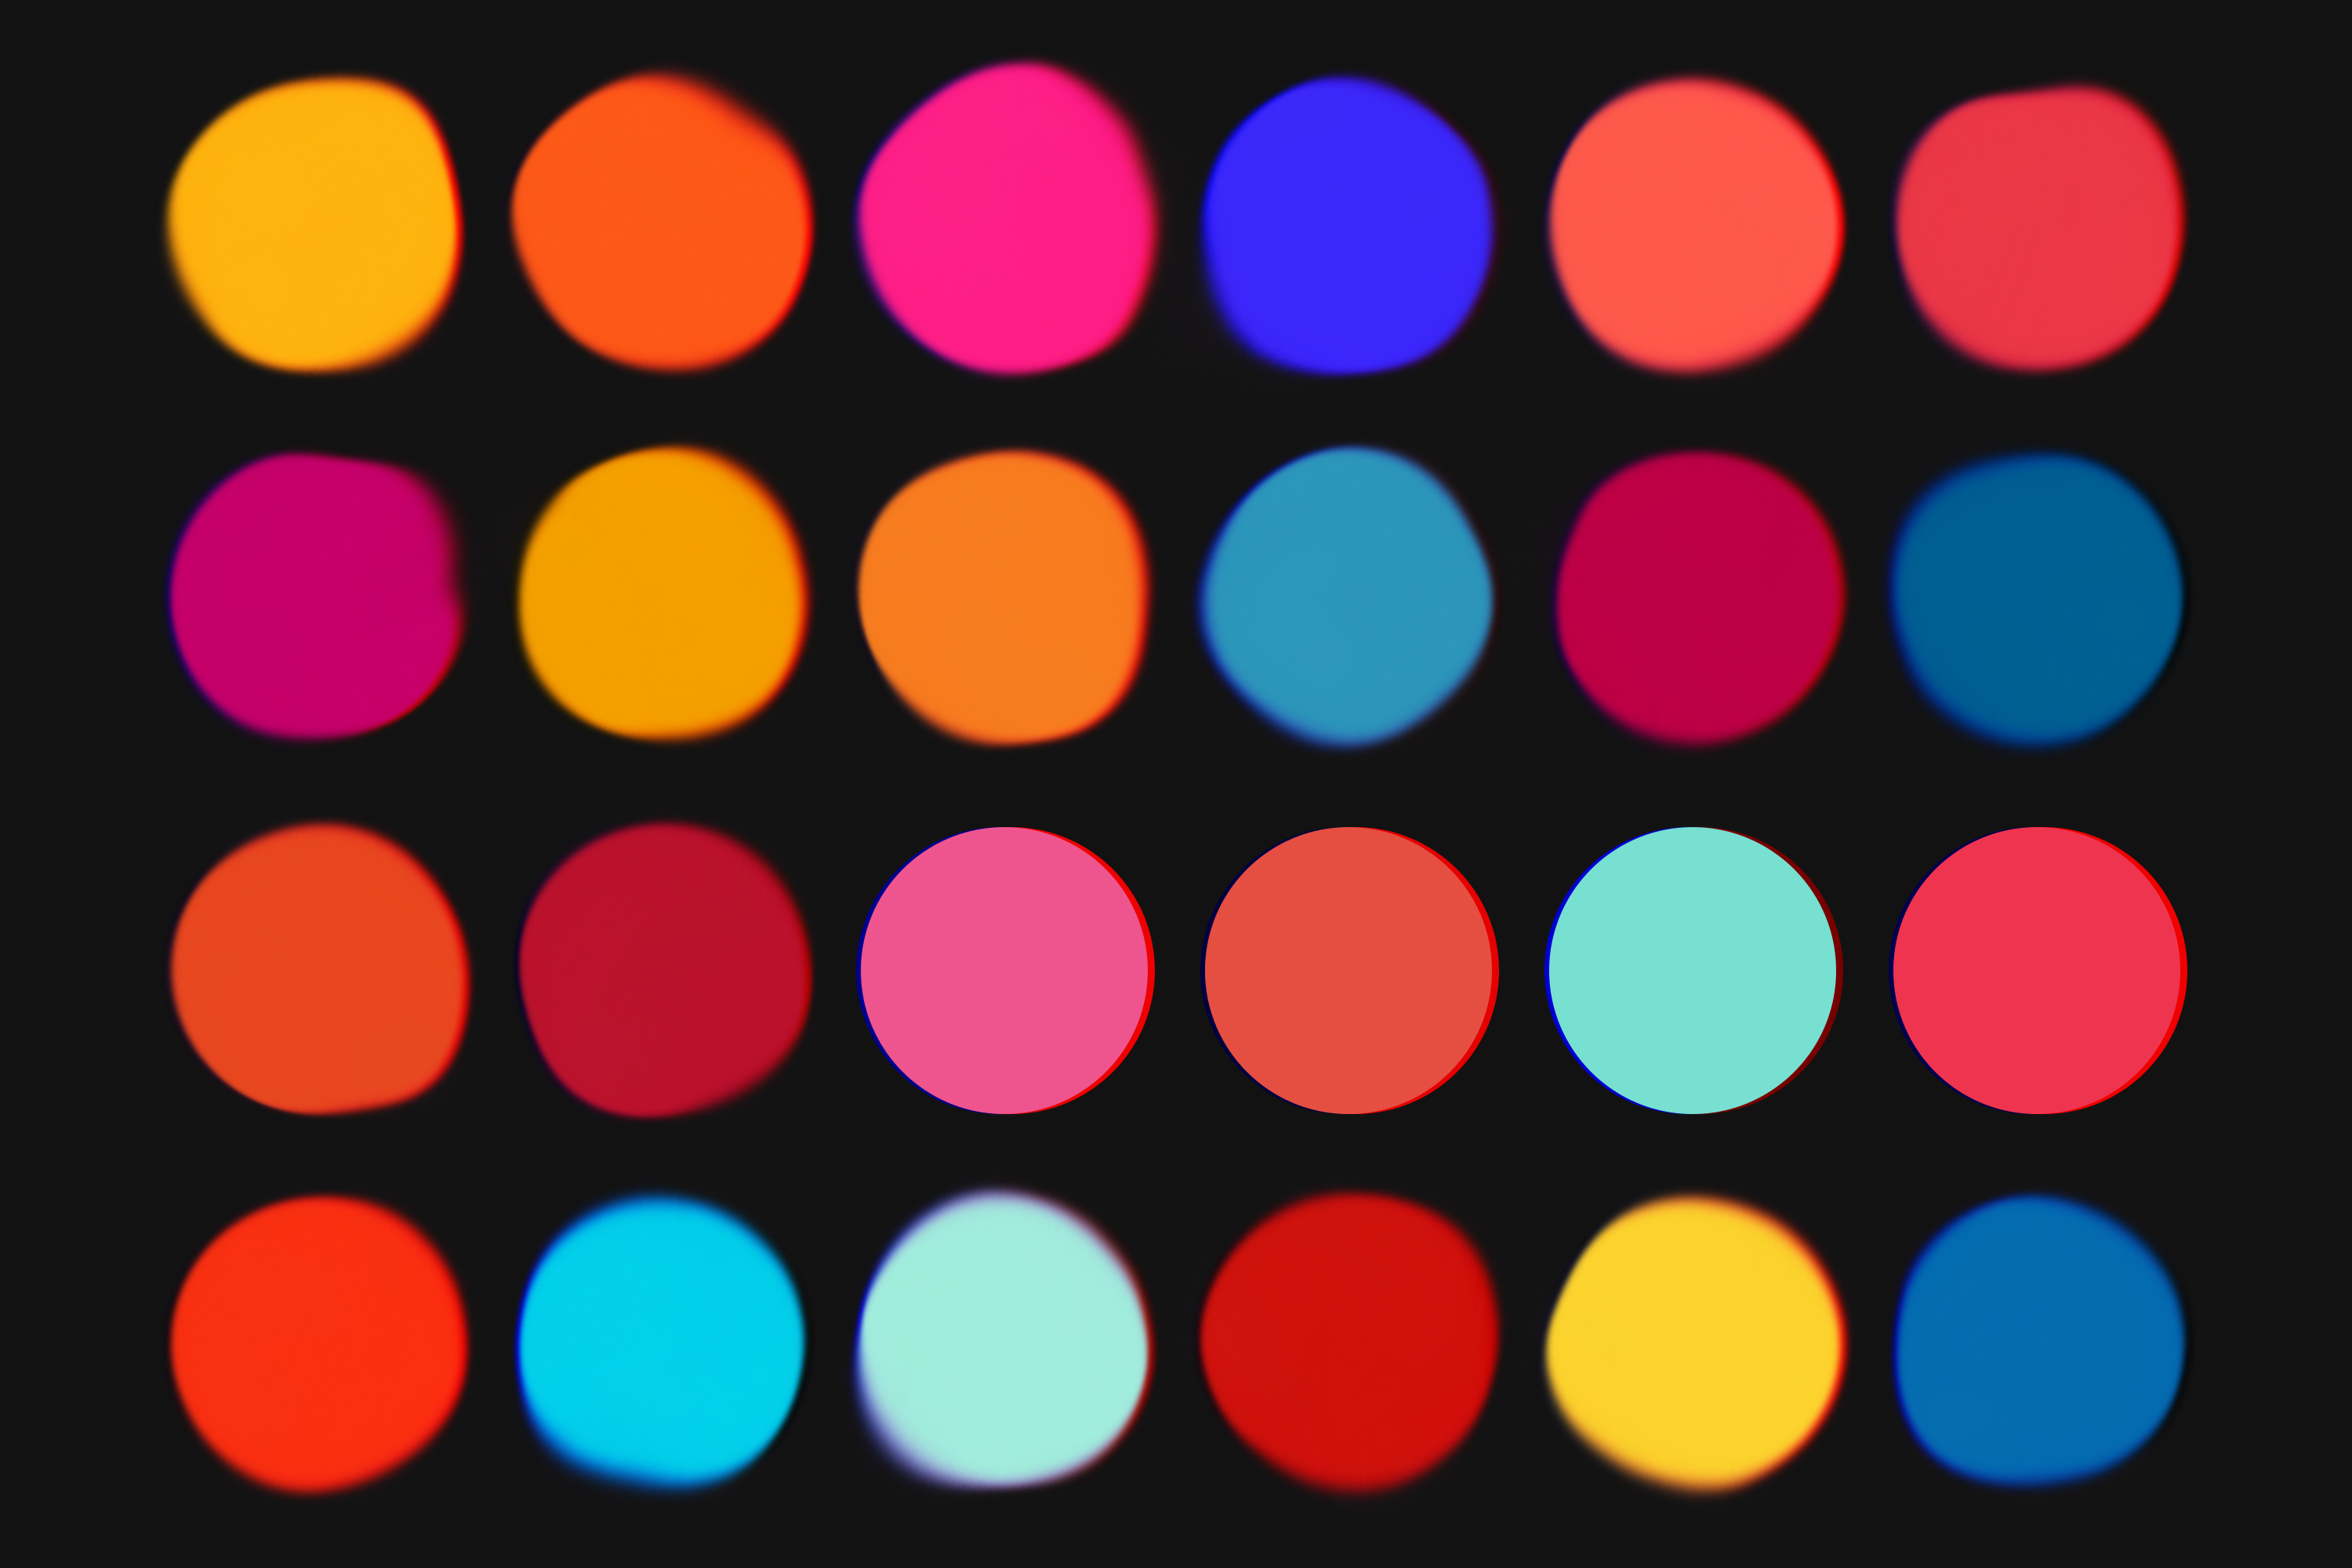 Vibrant - 8 Colors Schemes Pack example image 2